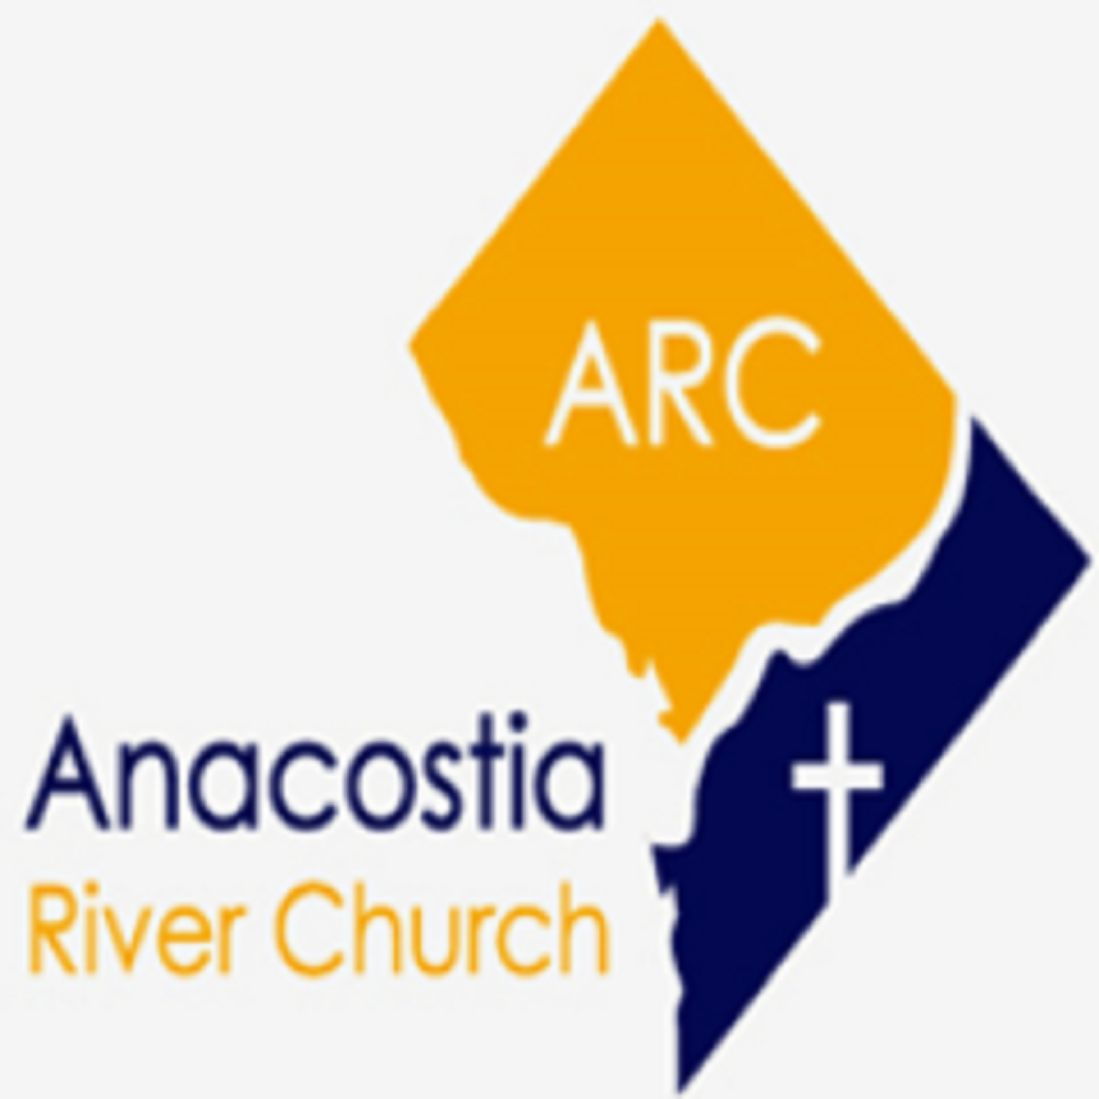 Anacostia River Church